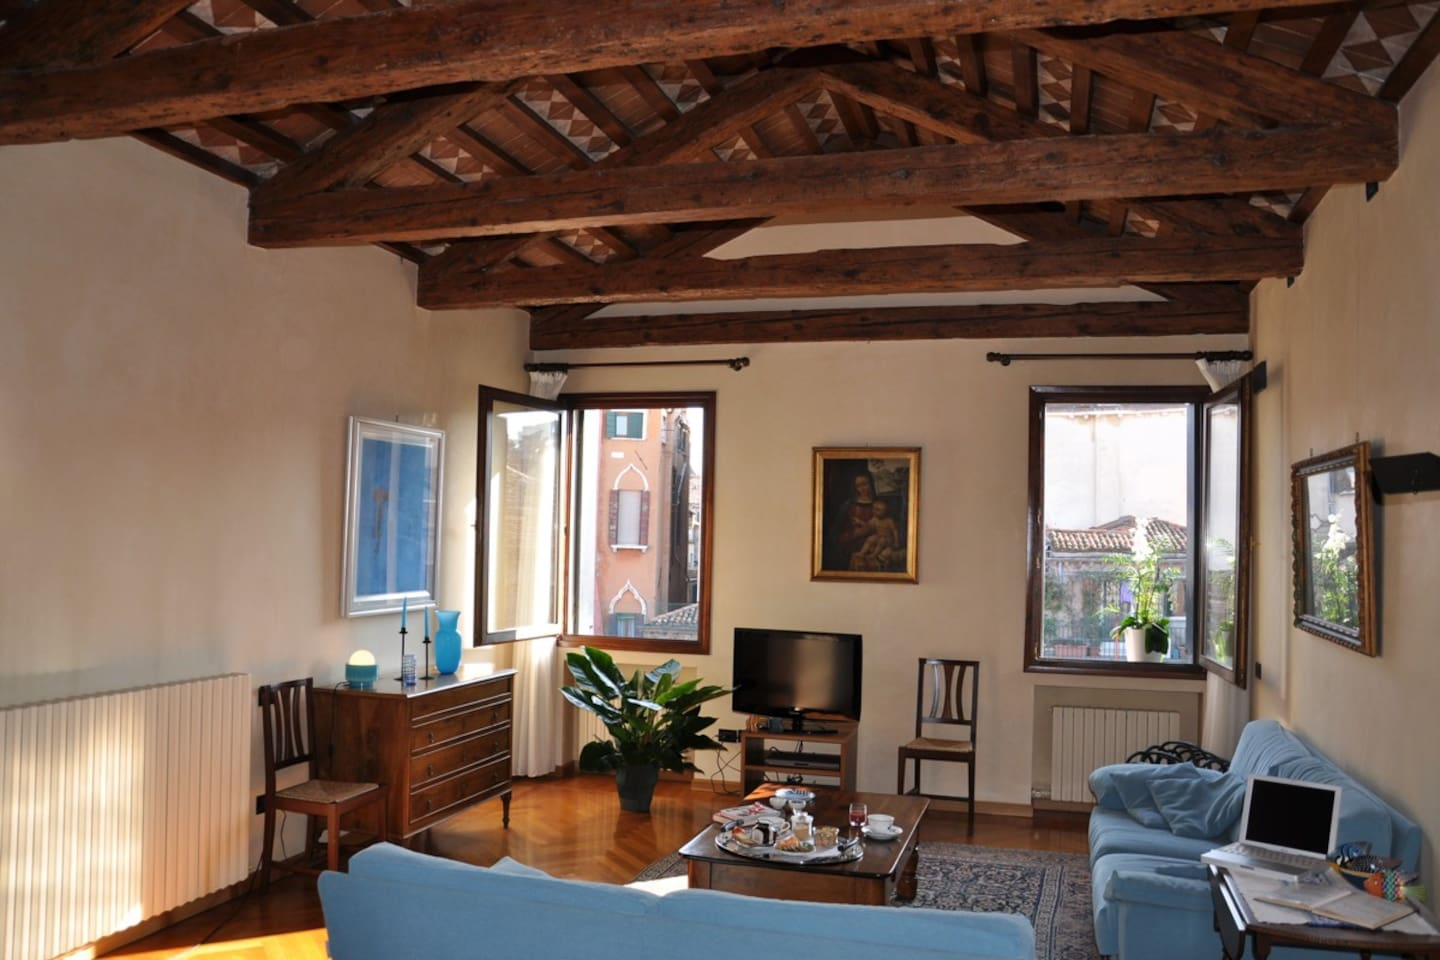 from sitting room enjoy lightful and a peaceful view of Venetian Palaces